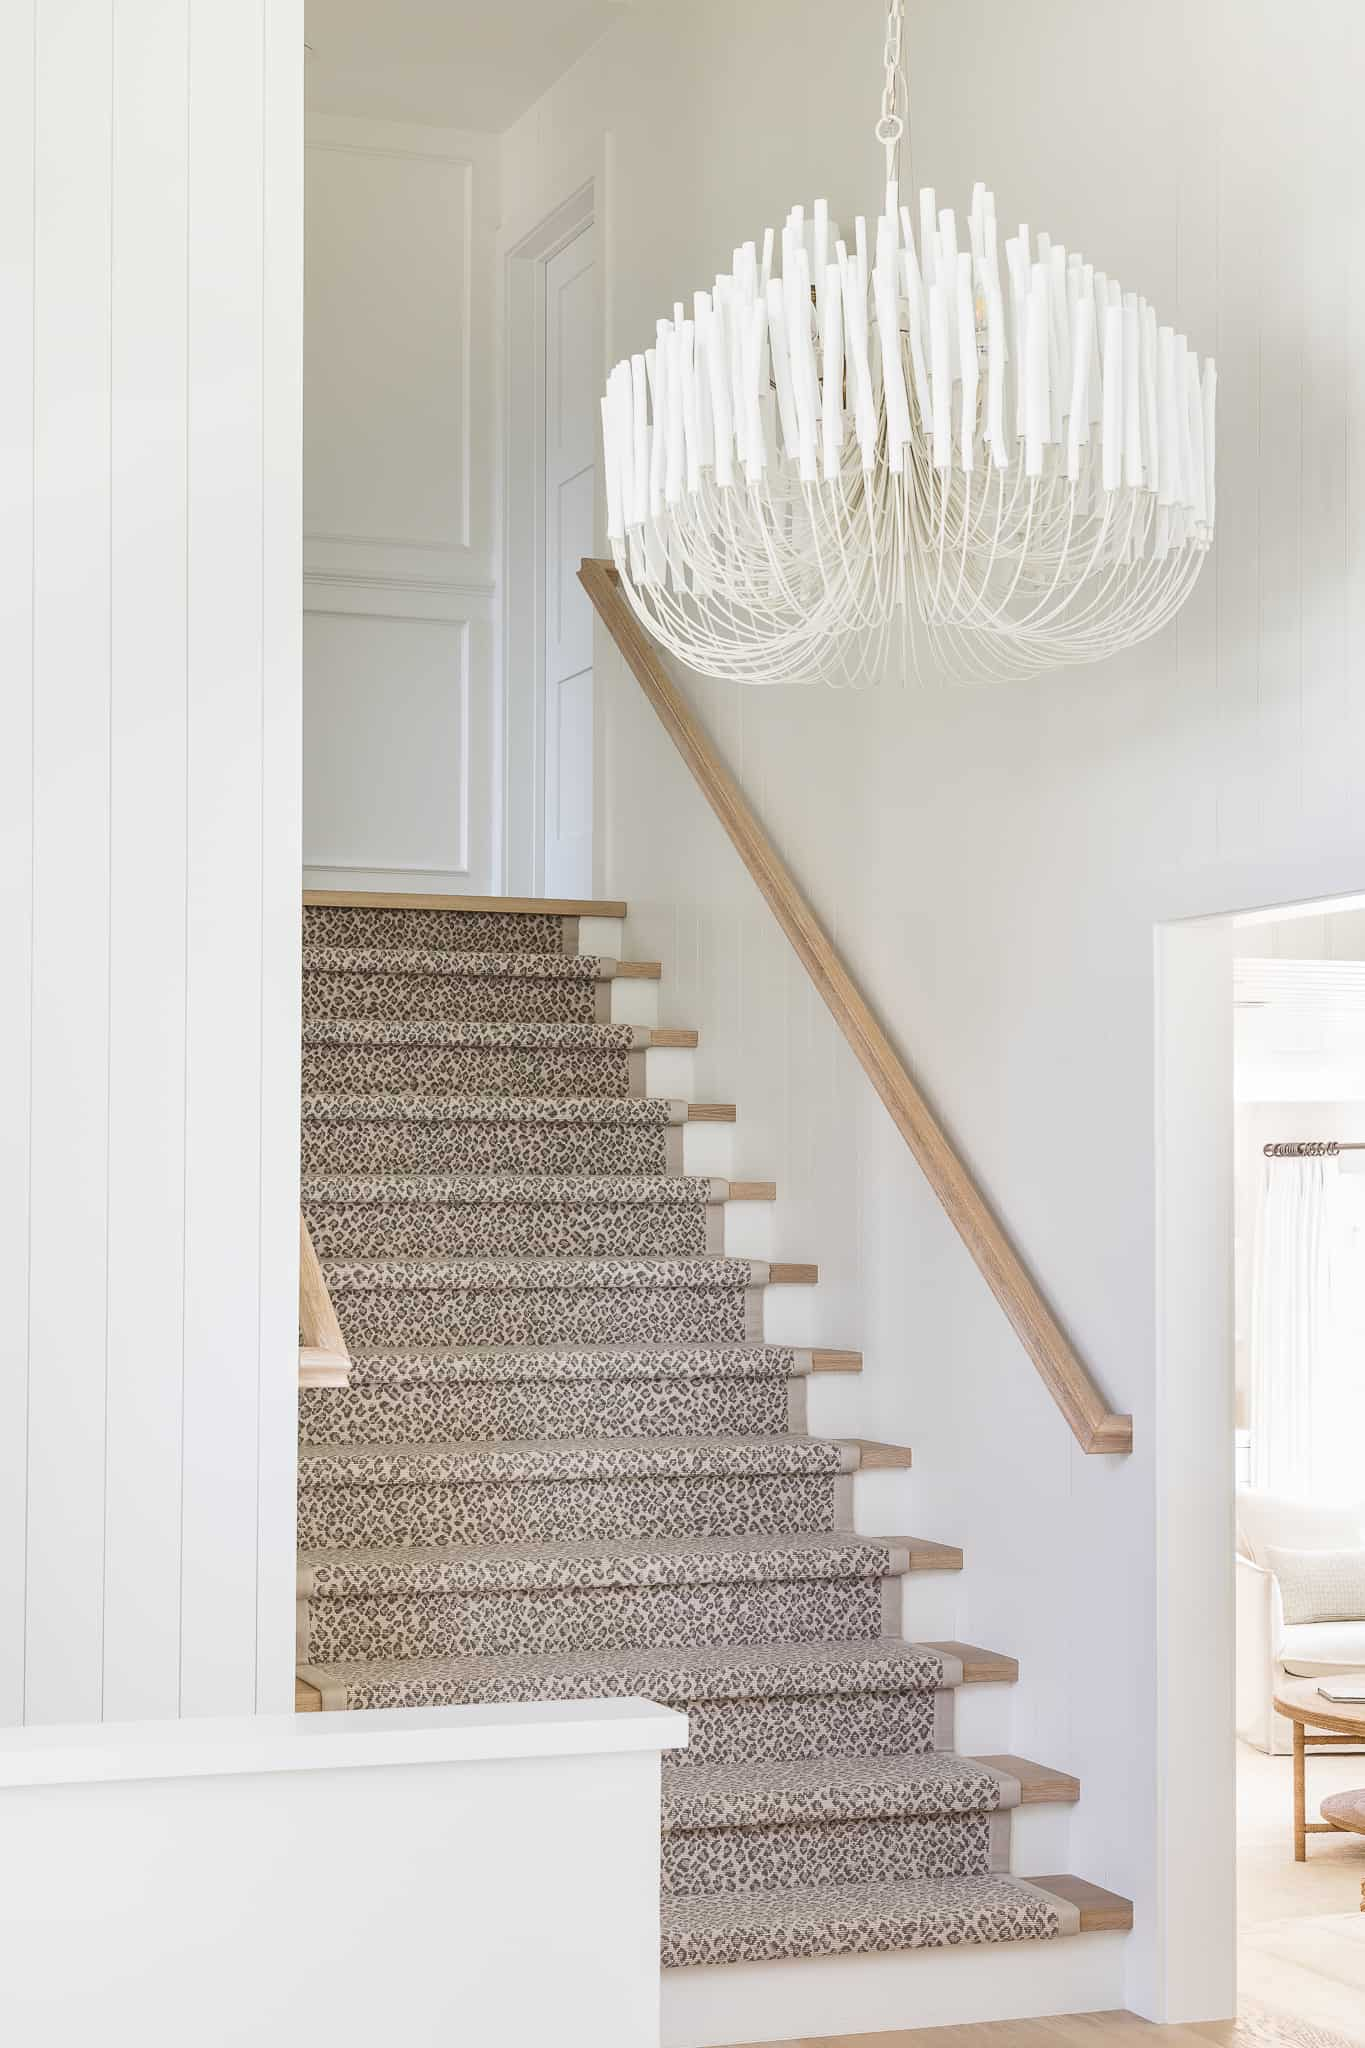 Port Newport Project - Mindy Gayer Design Co. - Stairwell Design